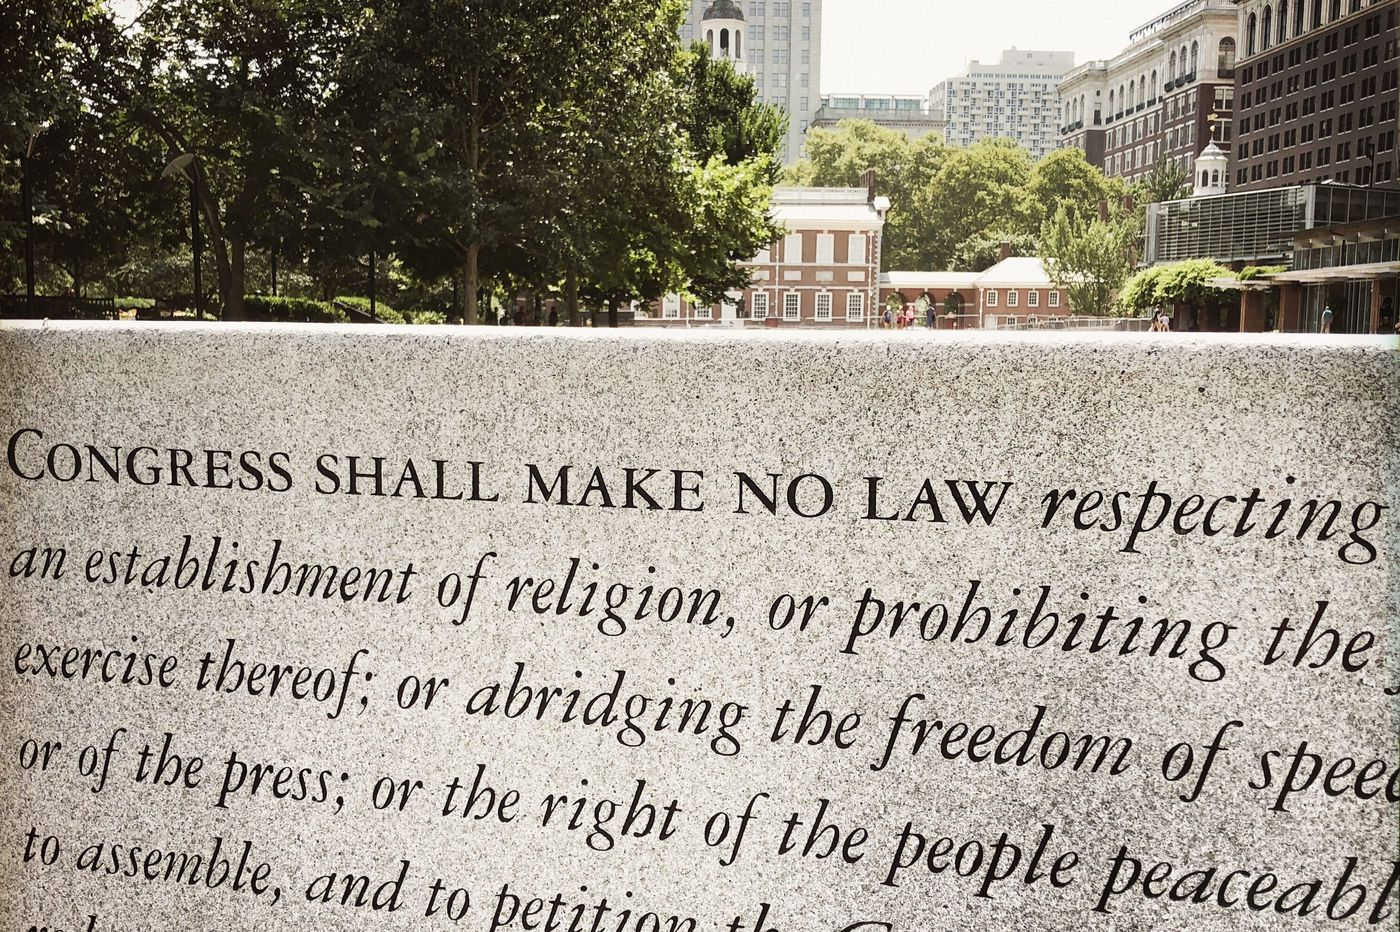 Here's what 15 newspapers around America had to say about freedom of the press